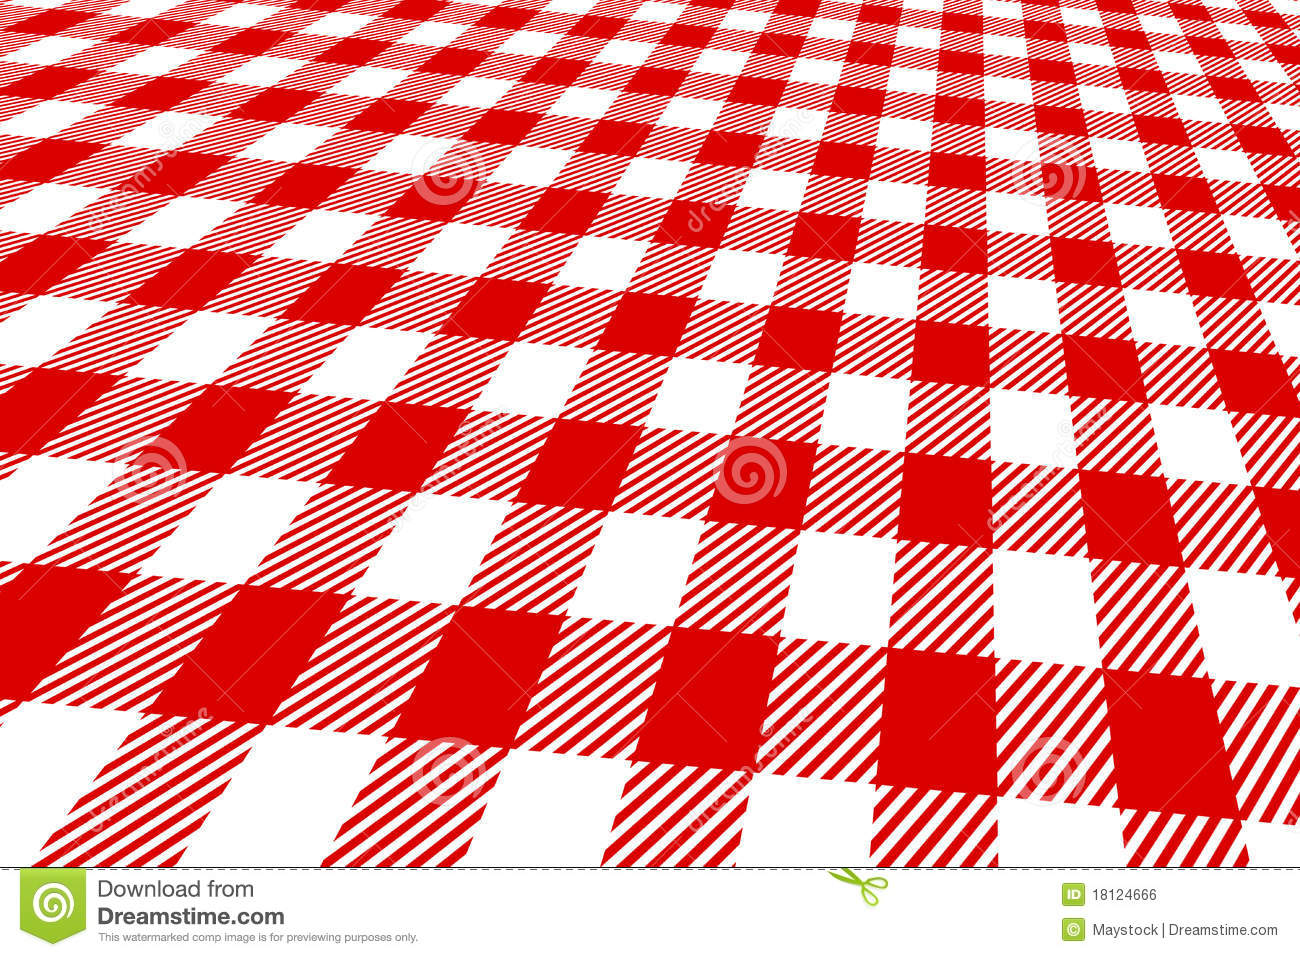 3d Picnic Tablecloth Red And White Royalty Free Stock Image - Image: 18124666